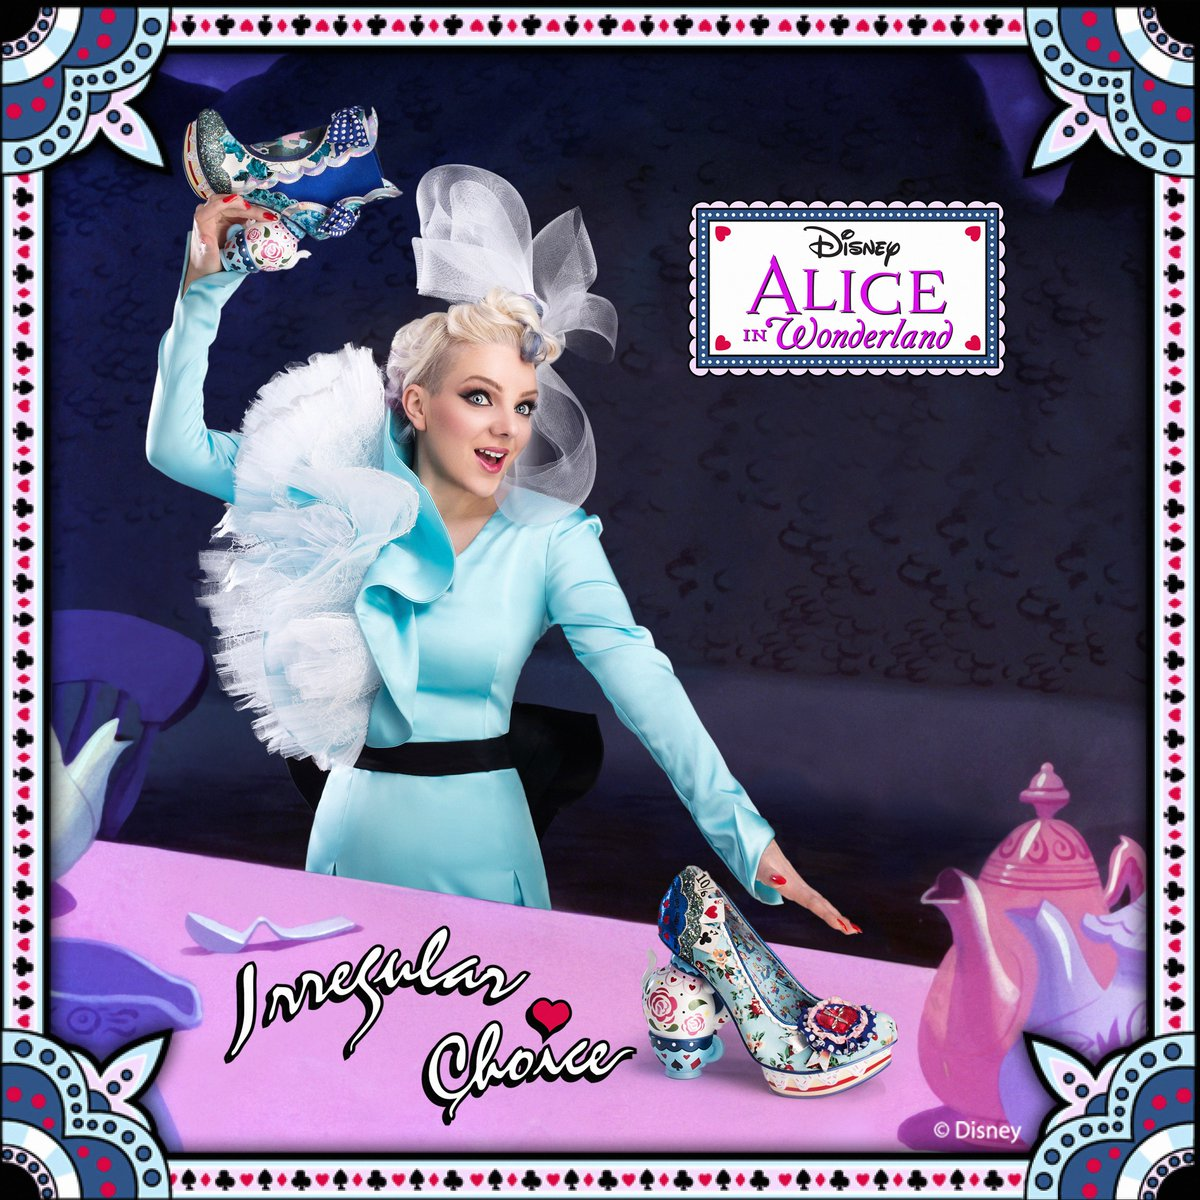 'One lump or two' & 'all Mad here' Limited edition Irregular Choice - Alice in Wonderland pouring into stores soon… https://t.co/mNgkKBqupW